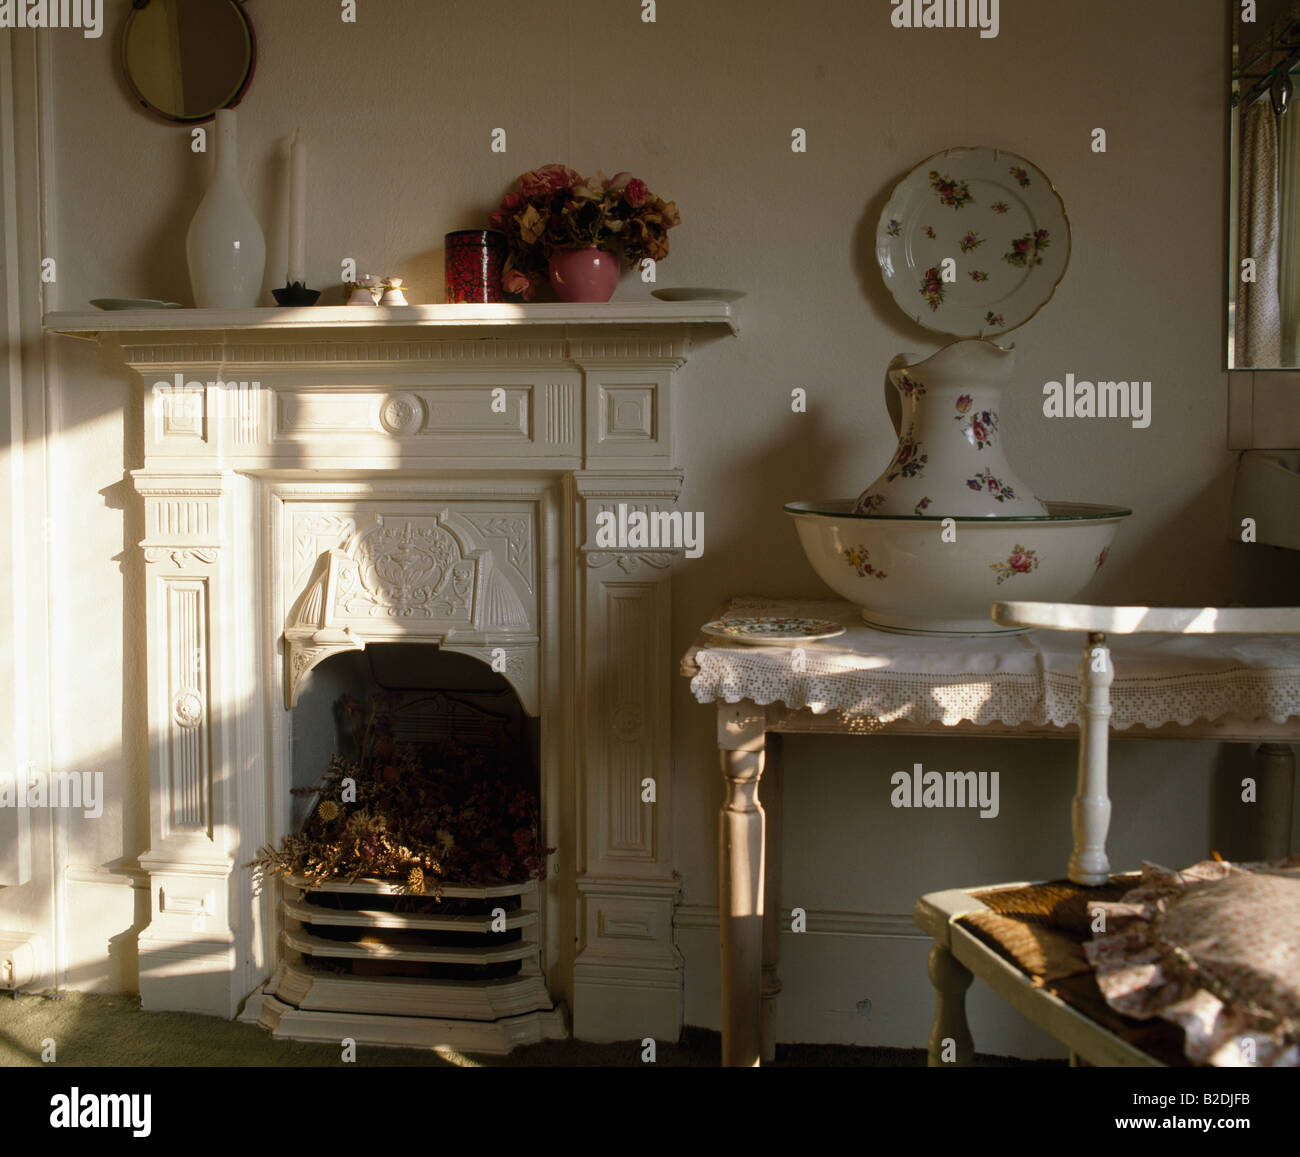 Victorian Bedroom Fireplace Fret : White victorian fireplace in bedroom with large jug and